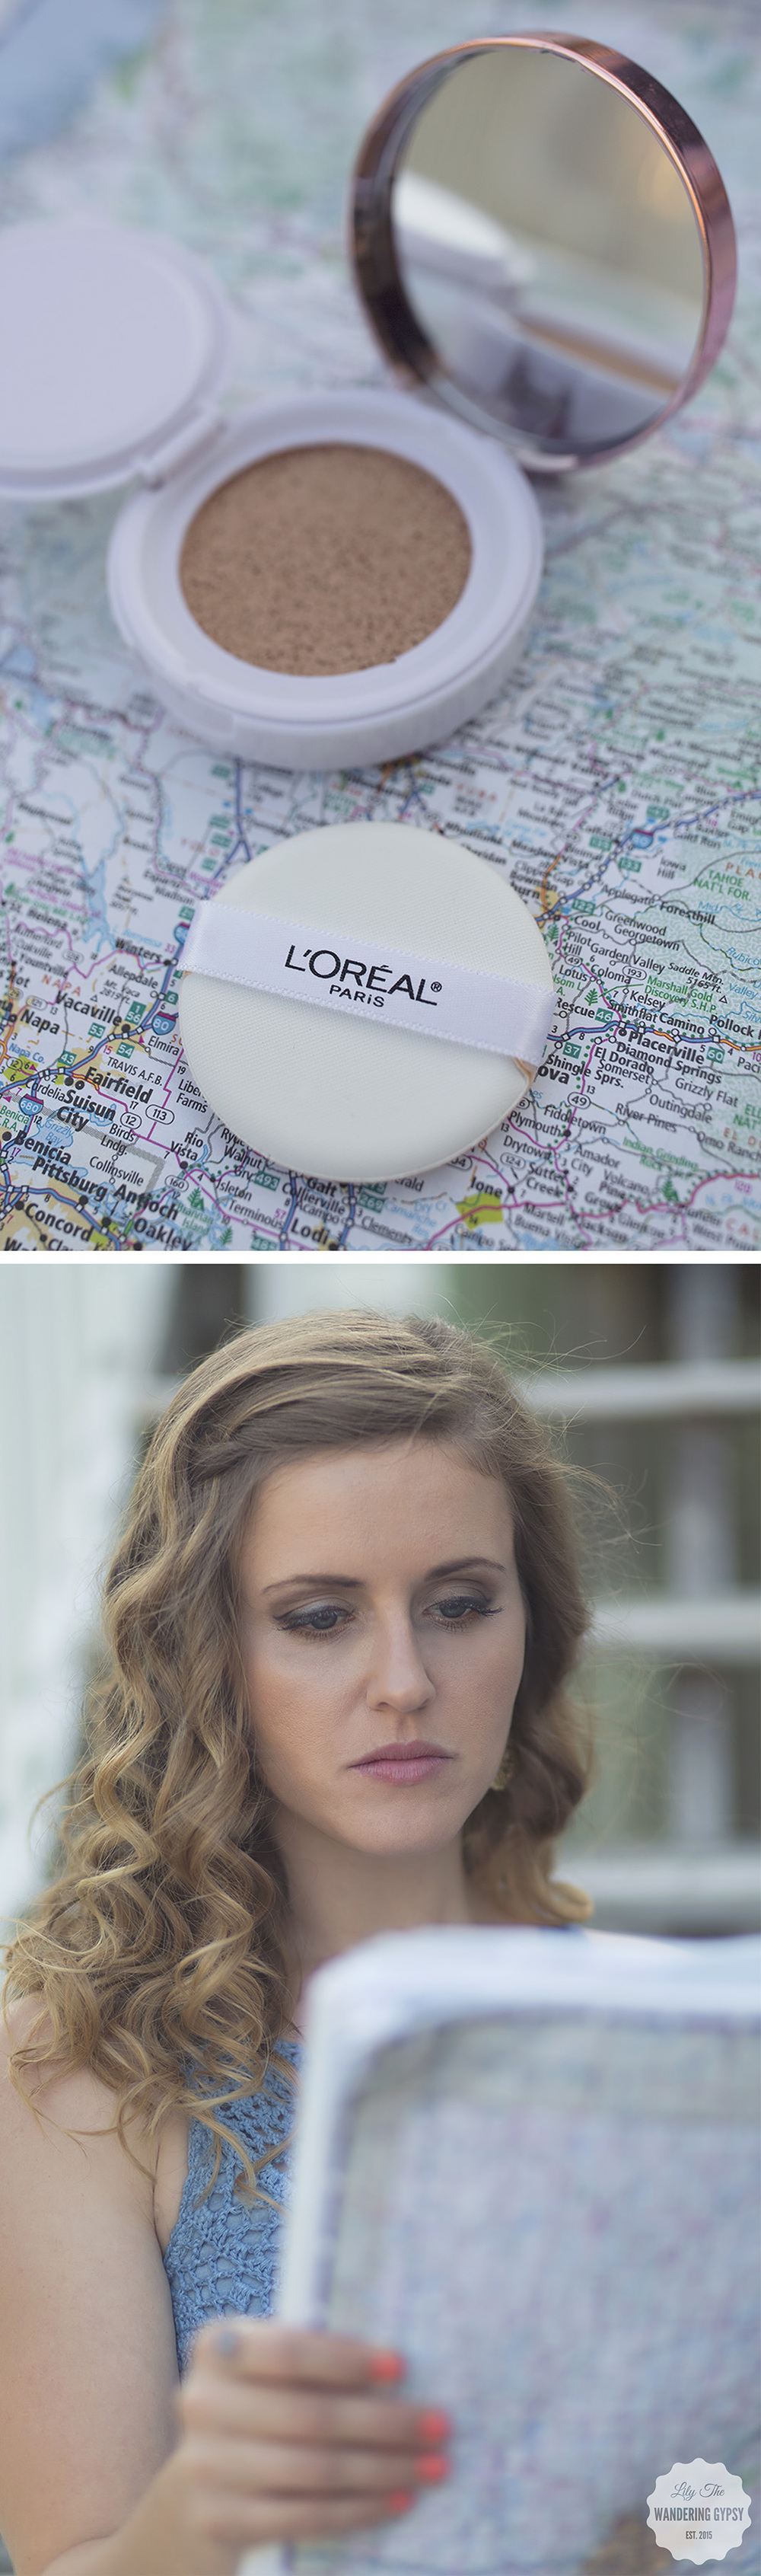 L'Oreal + Lily The Wandering Gypsy